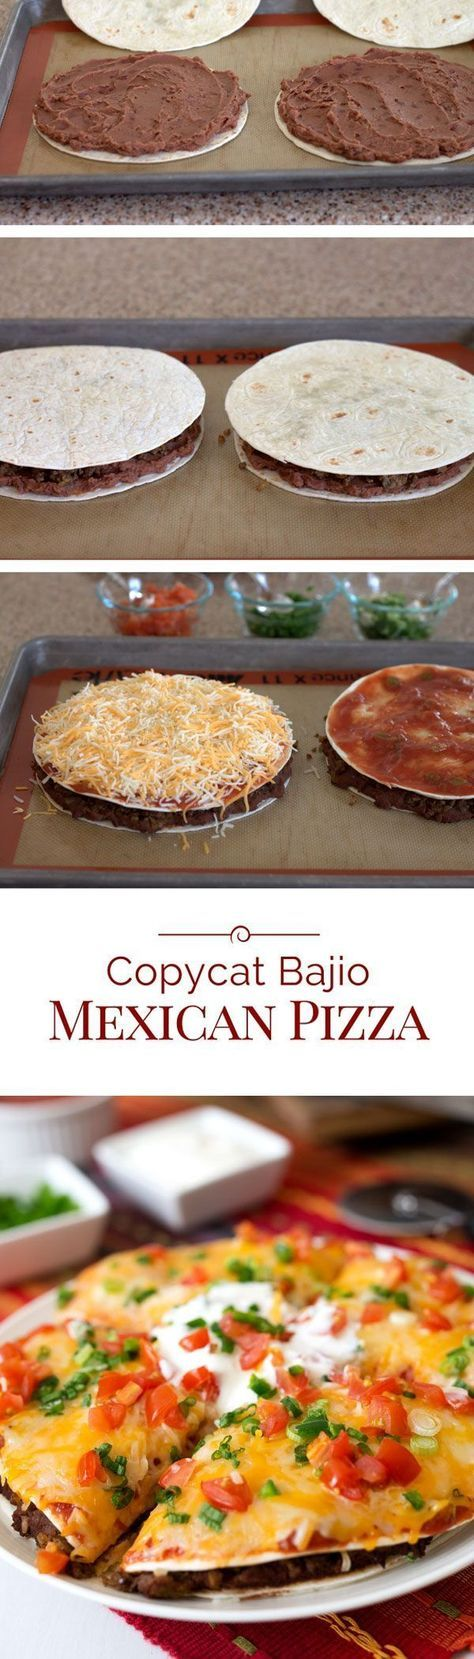 A fun Mexican Pizza with a layer of refried beans and spicy ground beef sandwiched between two flour tortillas, topped with salsa, shredded cheese, jalapenos, green onions, and tomatoes. Then baked until it's hot, melty and gooey delicious.